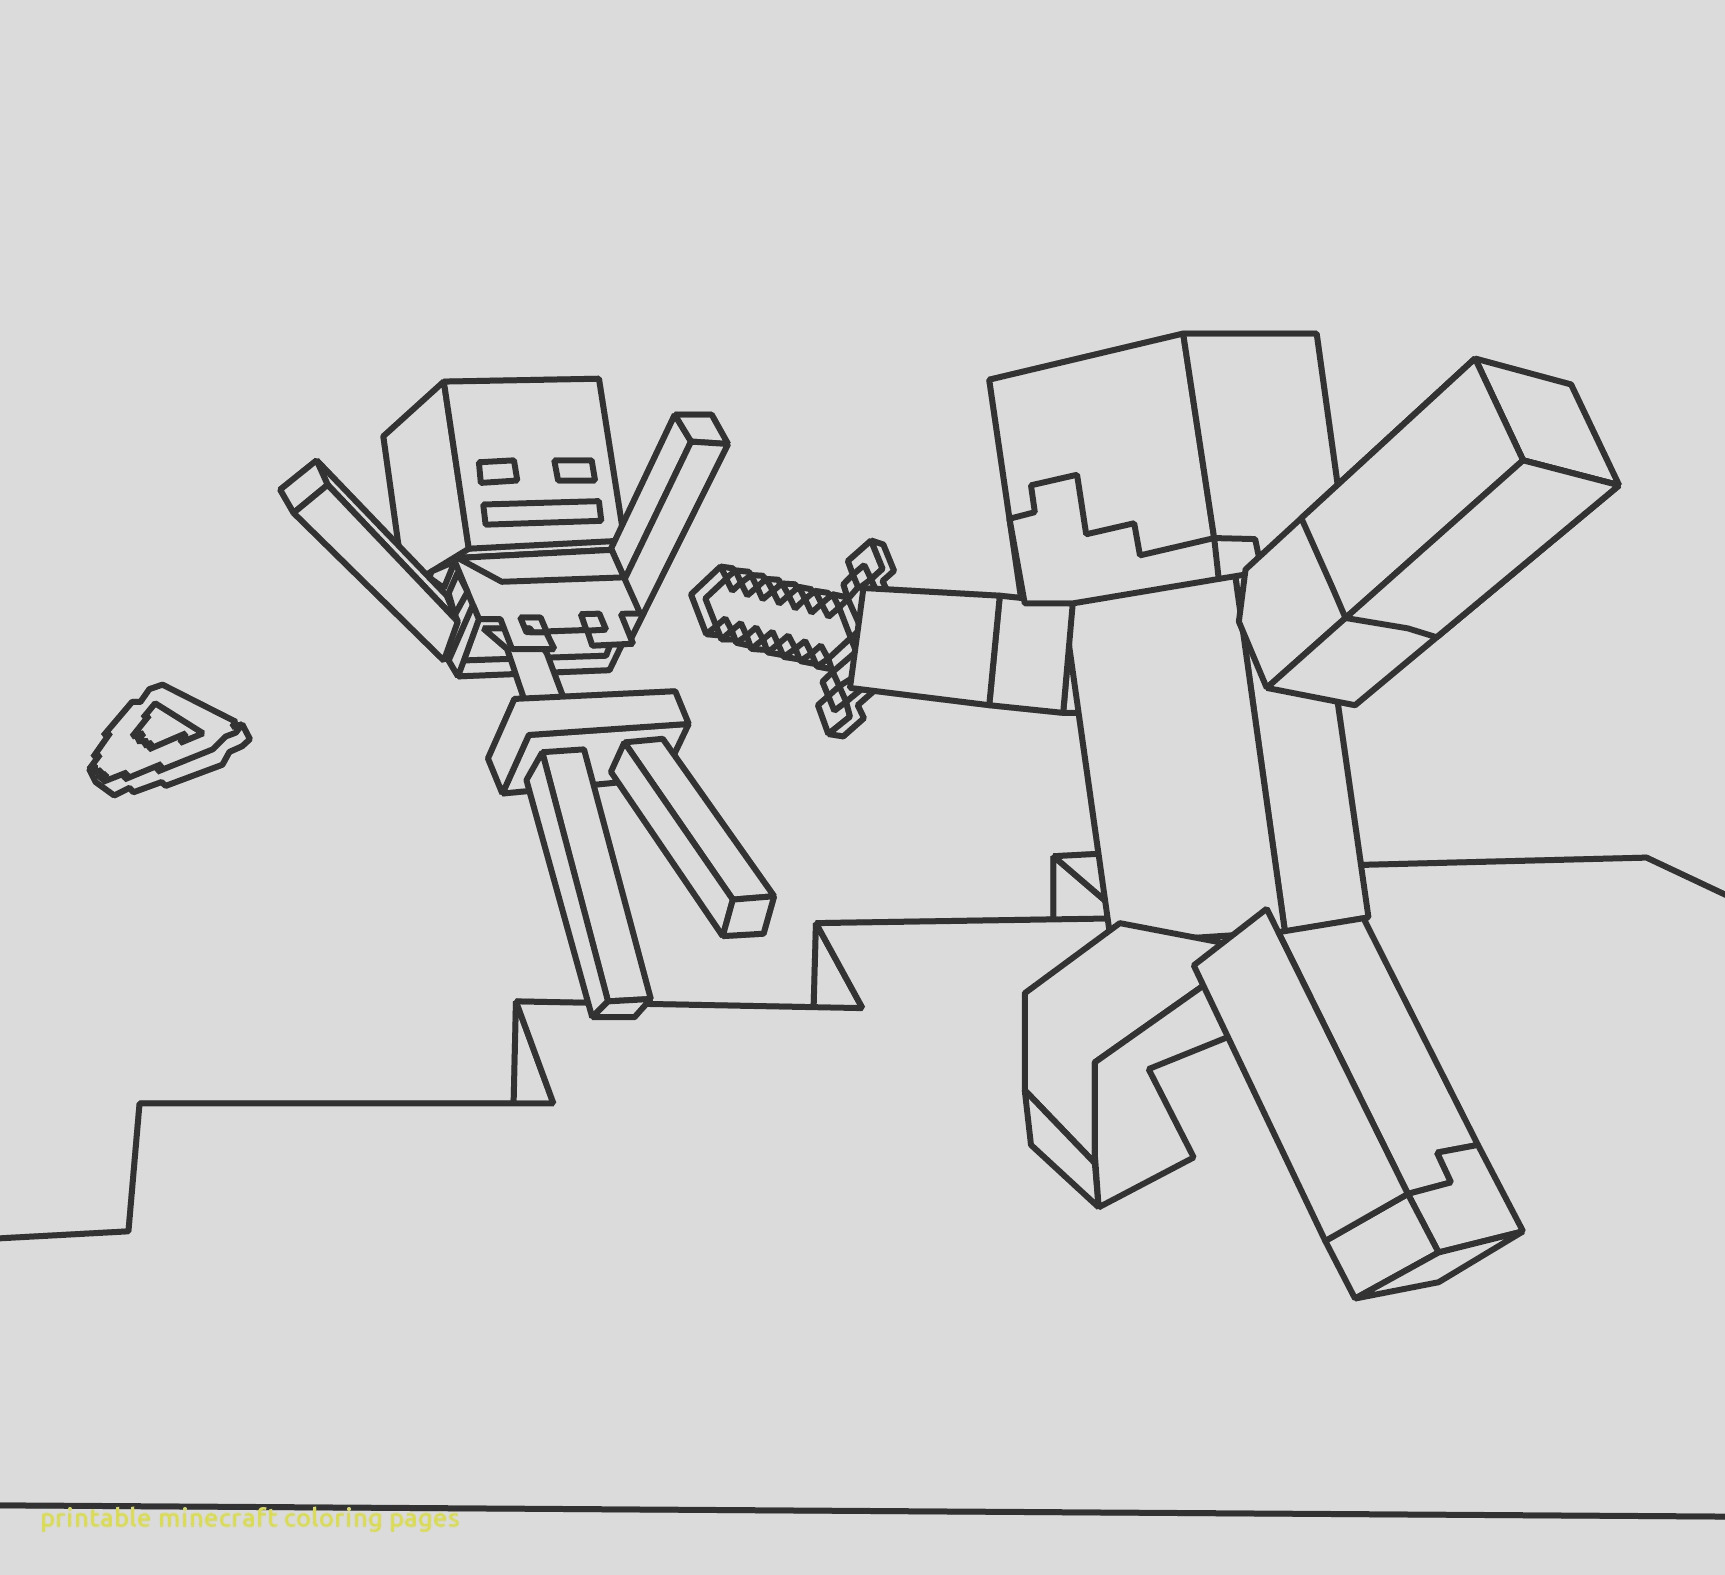 minecraft spider coloring pages minecraft coloring pages spider at getcoloringscom minecraft pages spider coloring